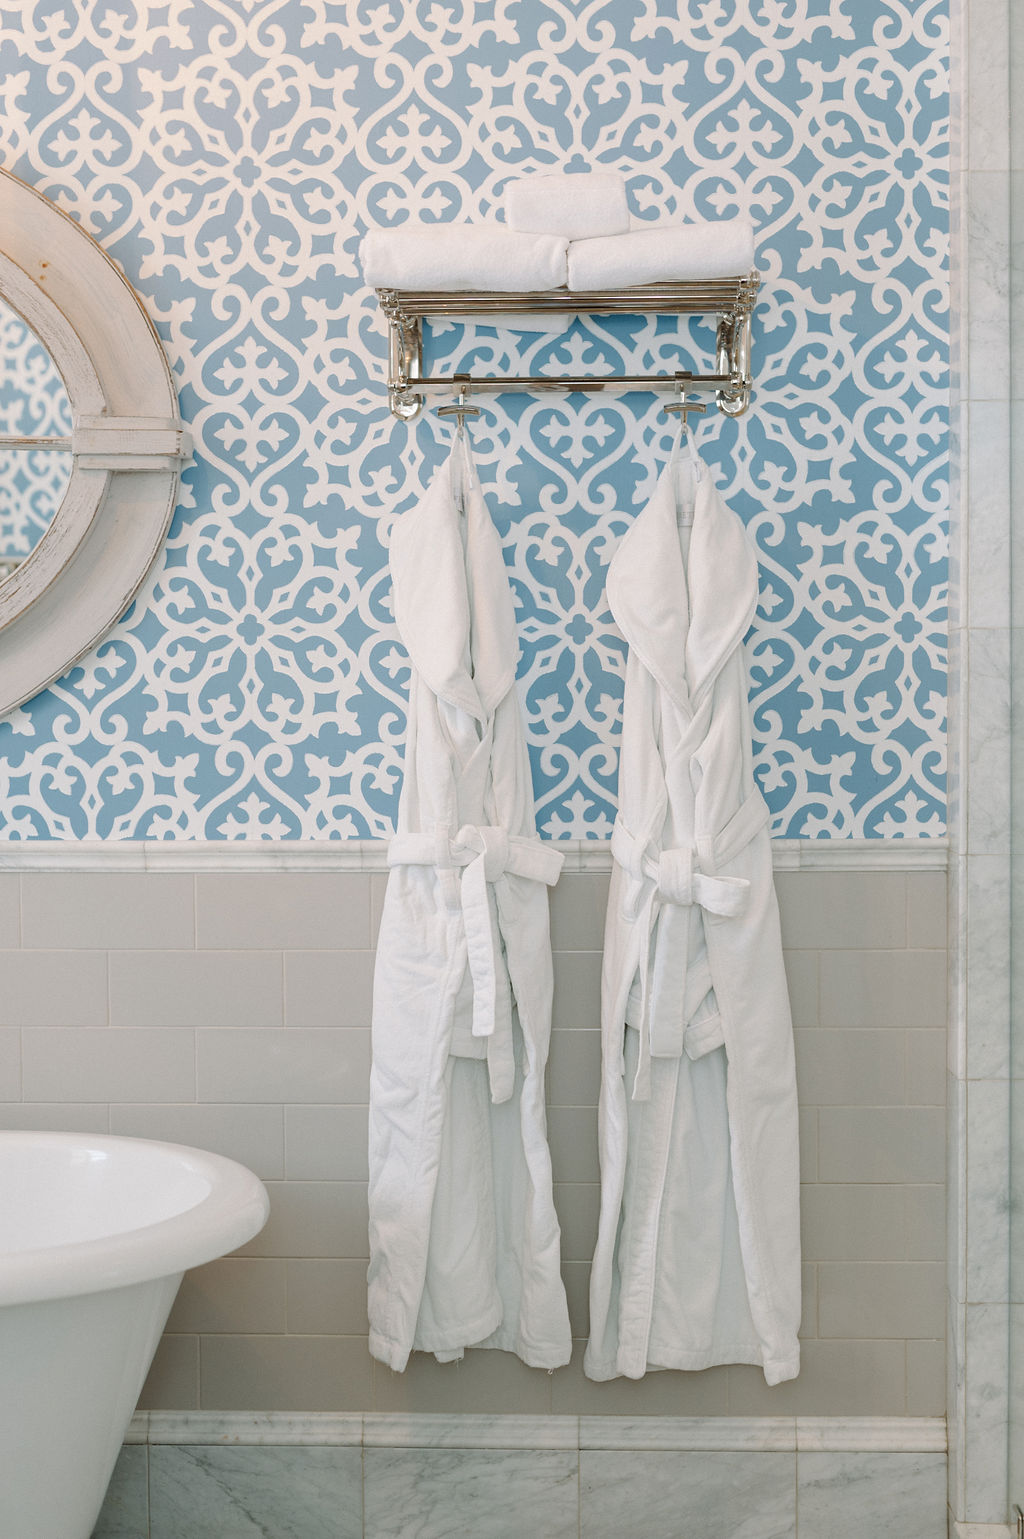 Two robes hanging on wall in bathroom of Room 4